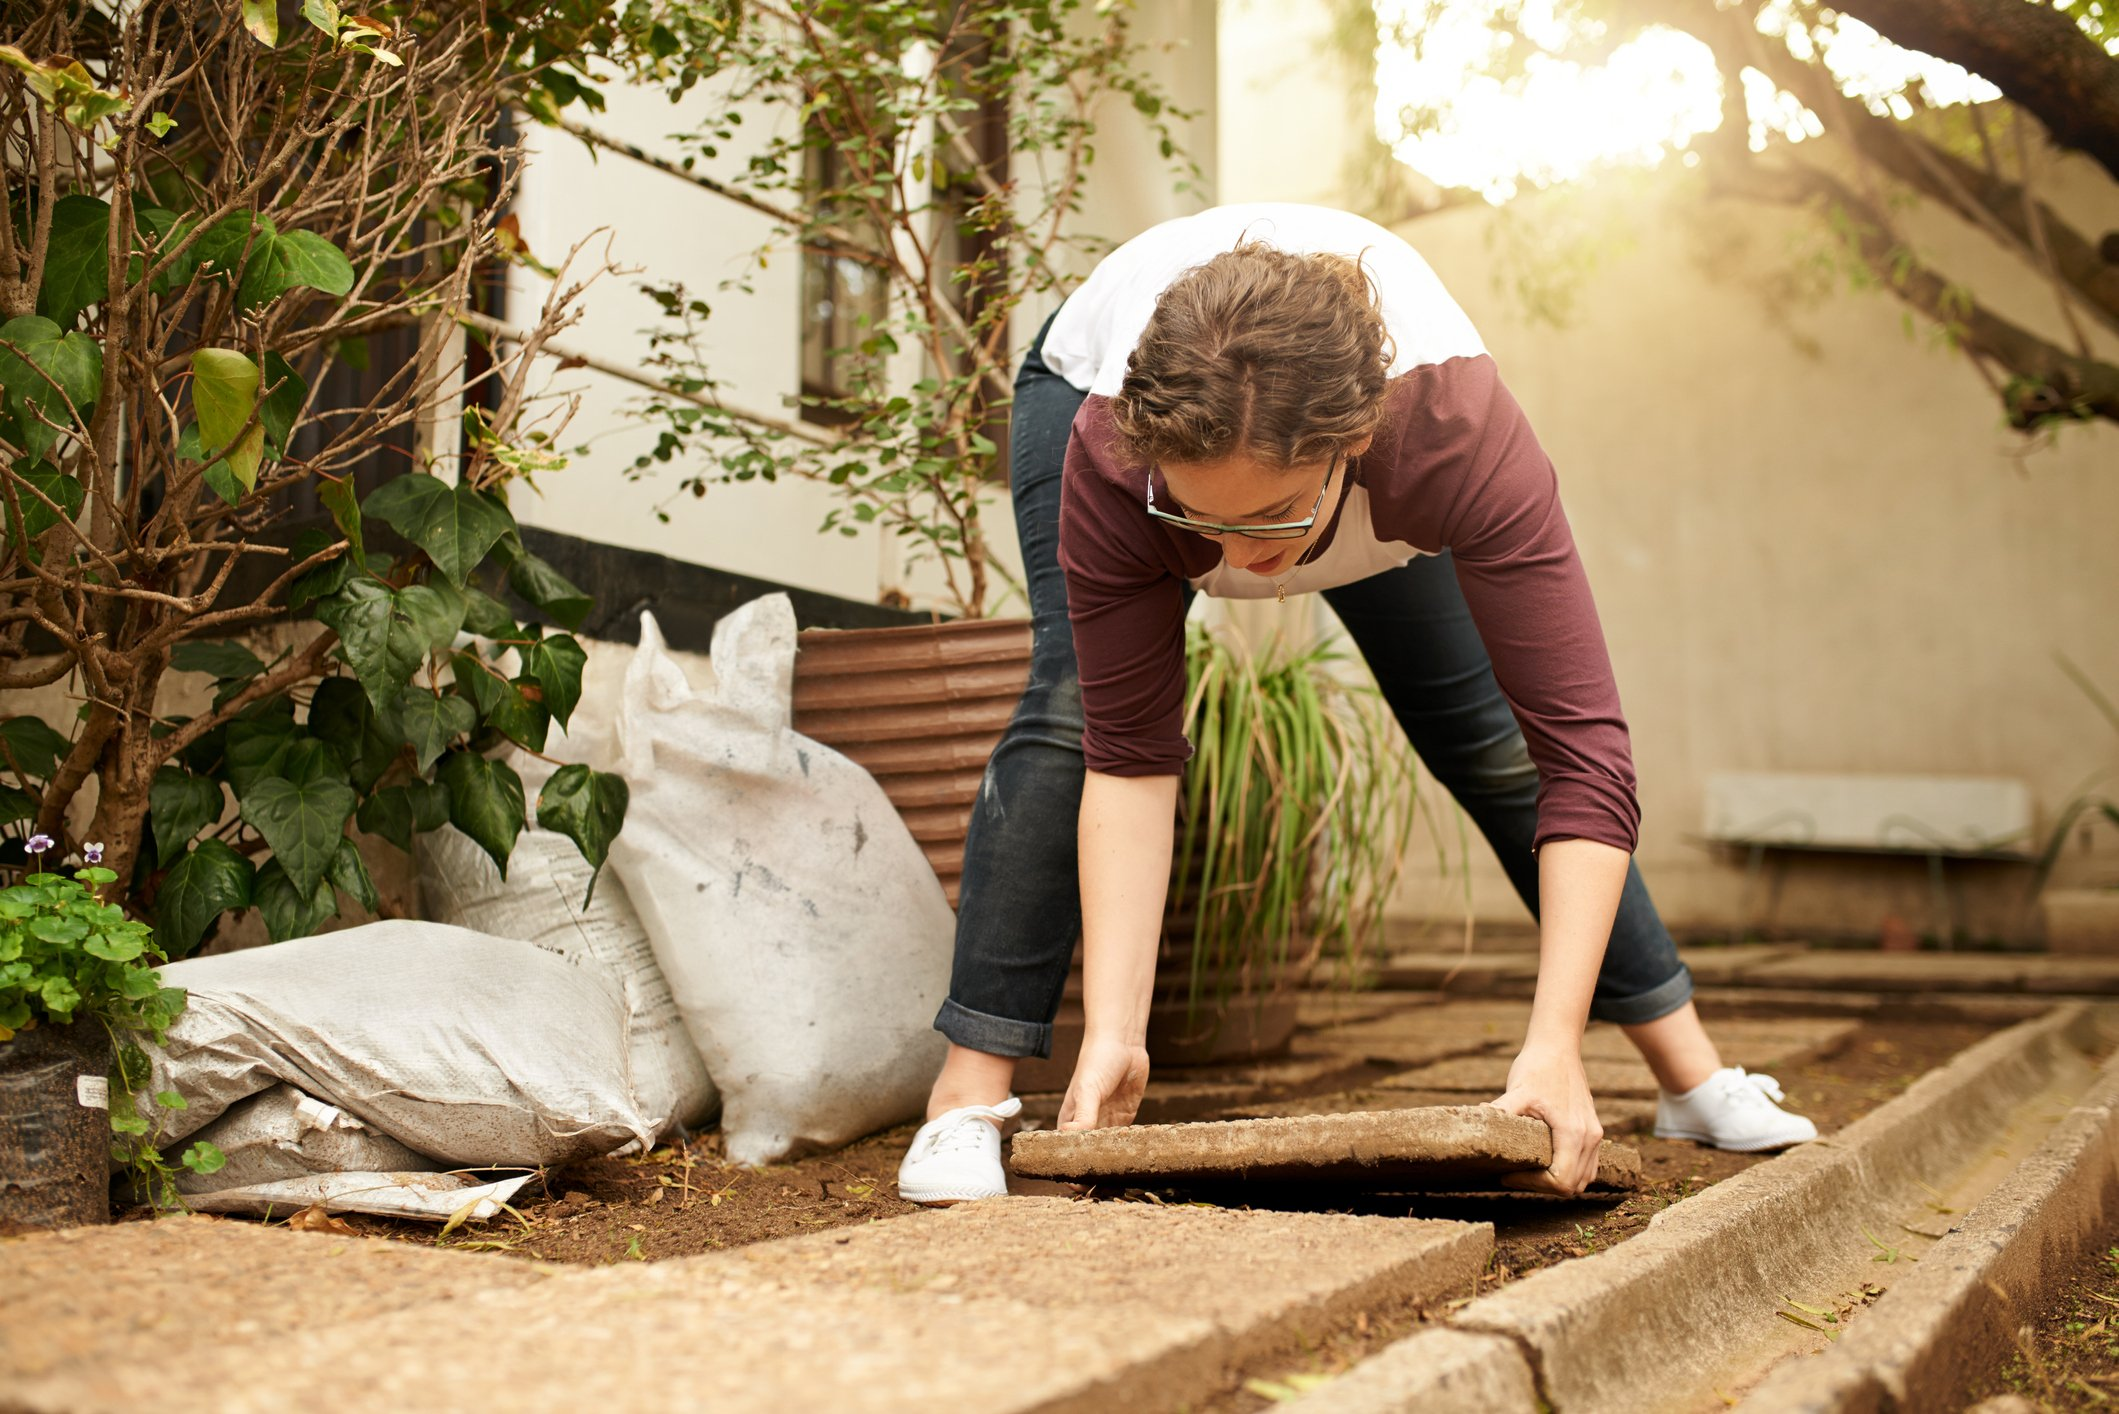 Shot of a young woman working on home improvements in her garden